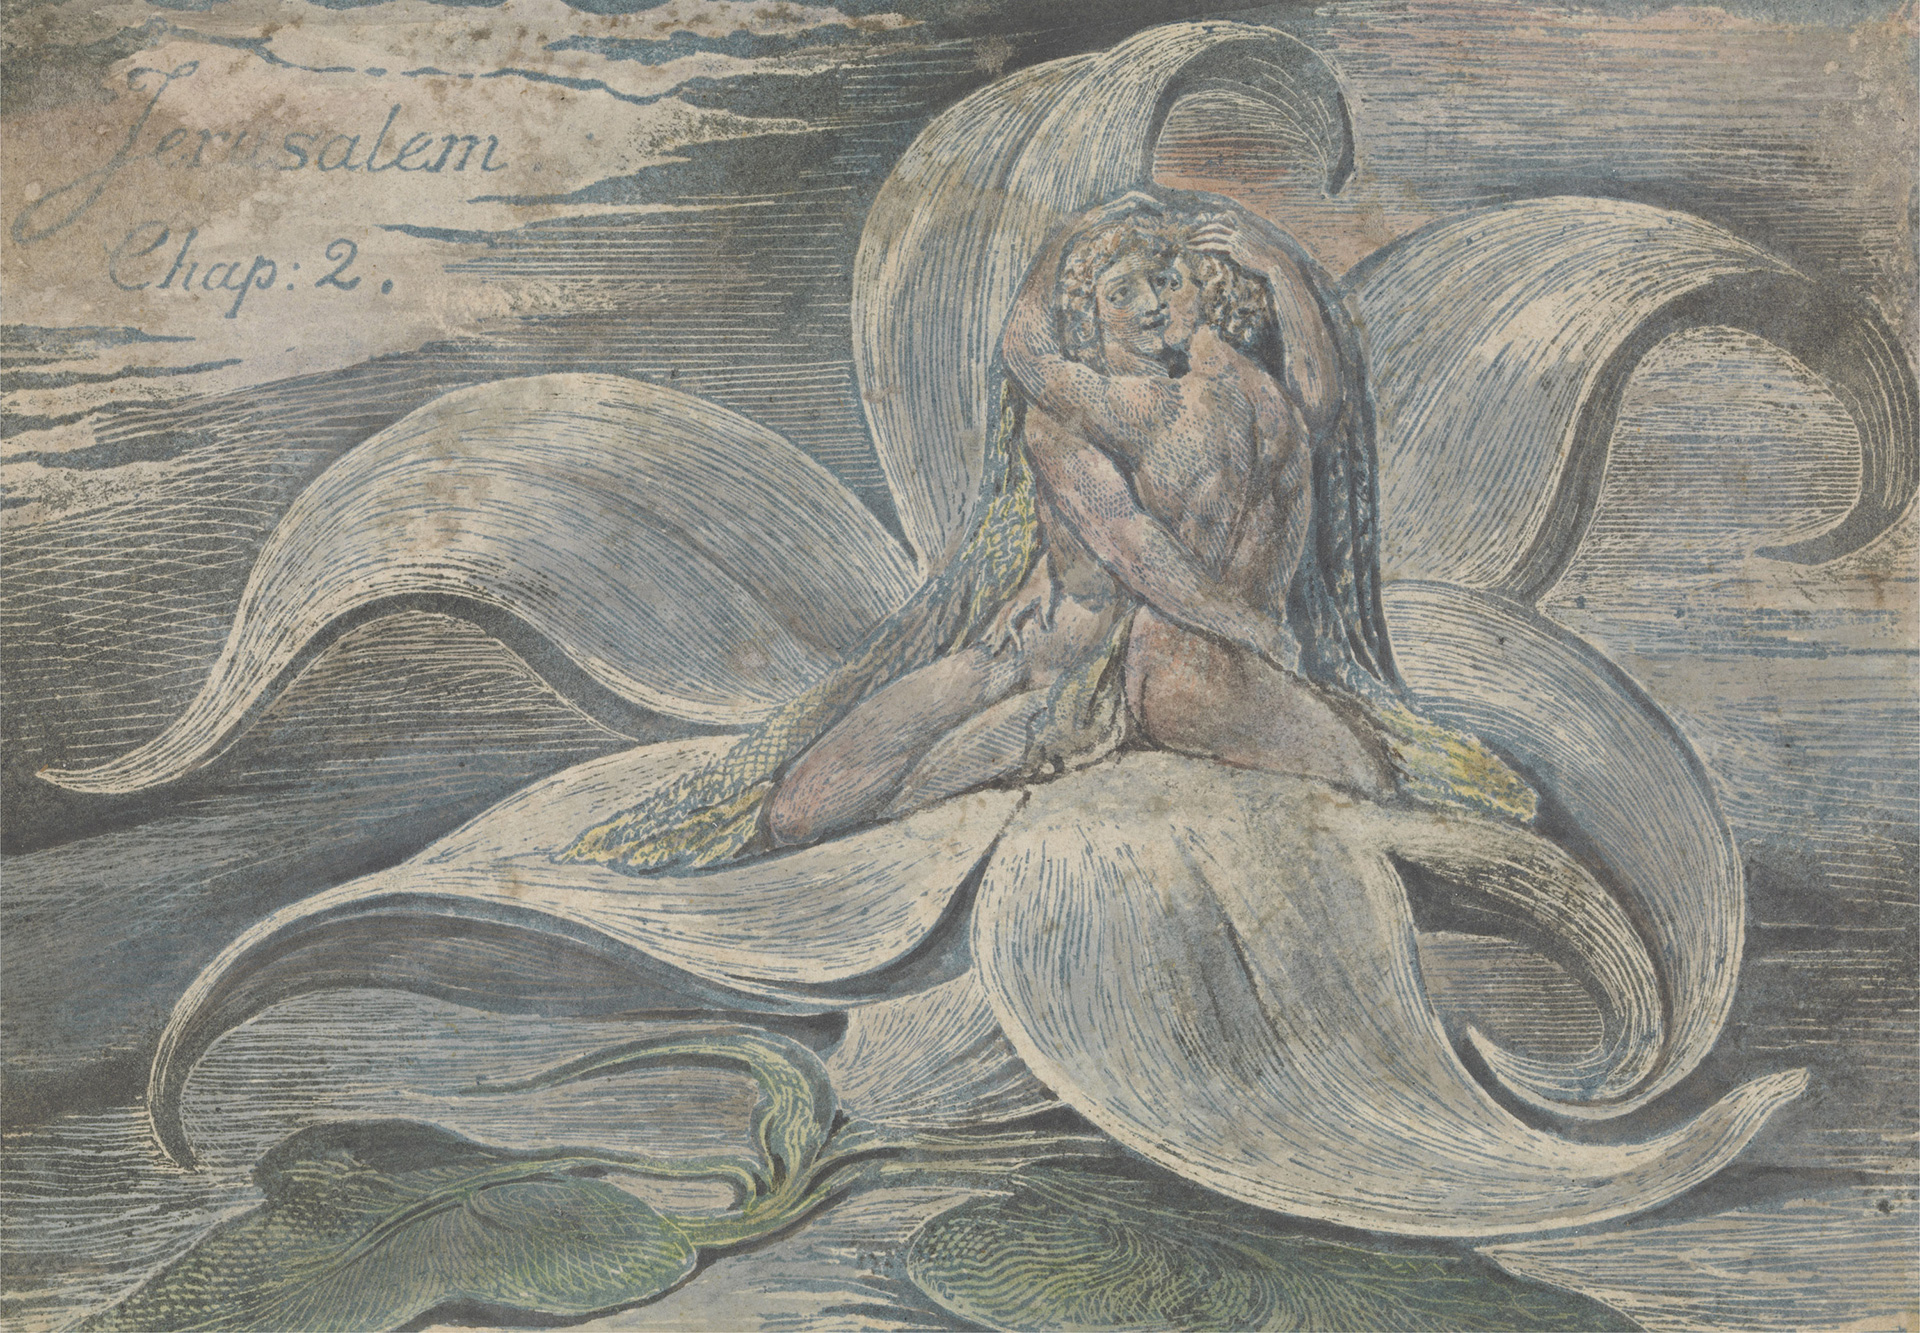 William Blake, Jerusalem, Plate 28, proof Impression, top design only, 1820| Largest survey show of work by William Blake | STIRworld